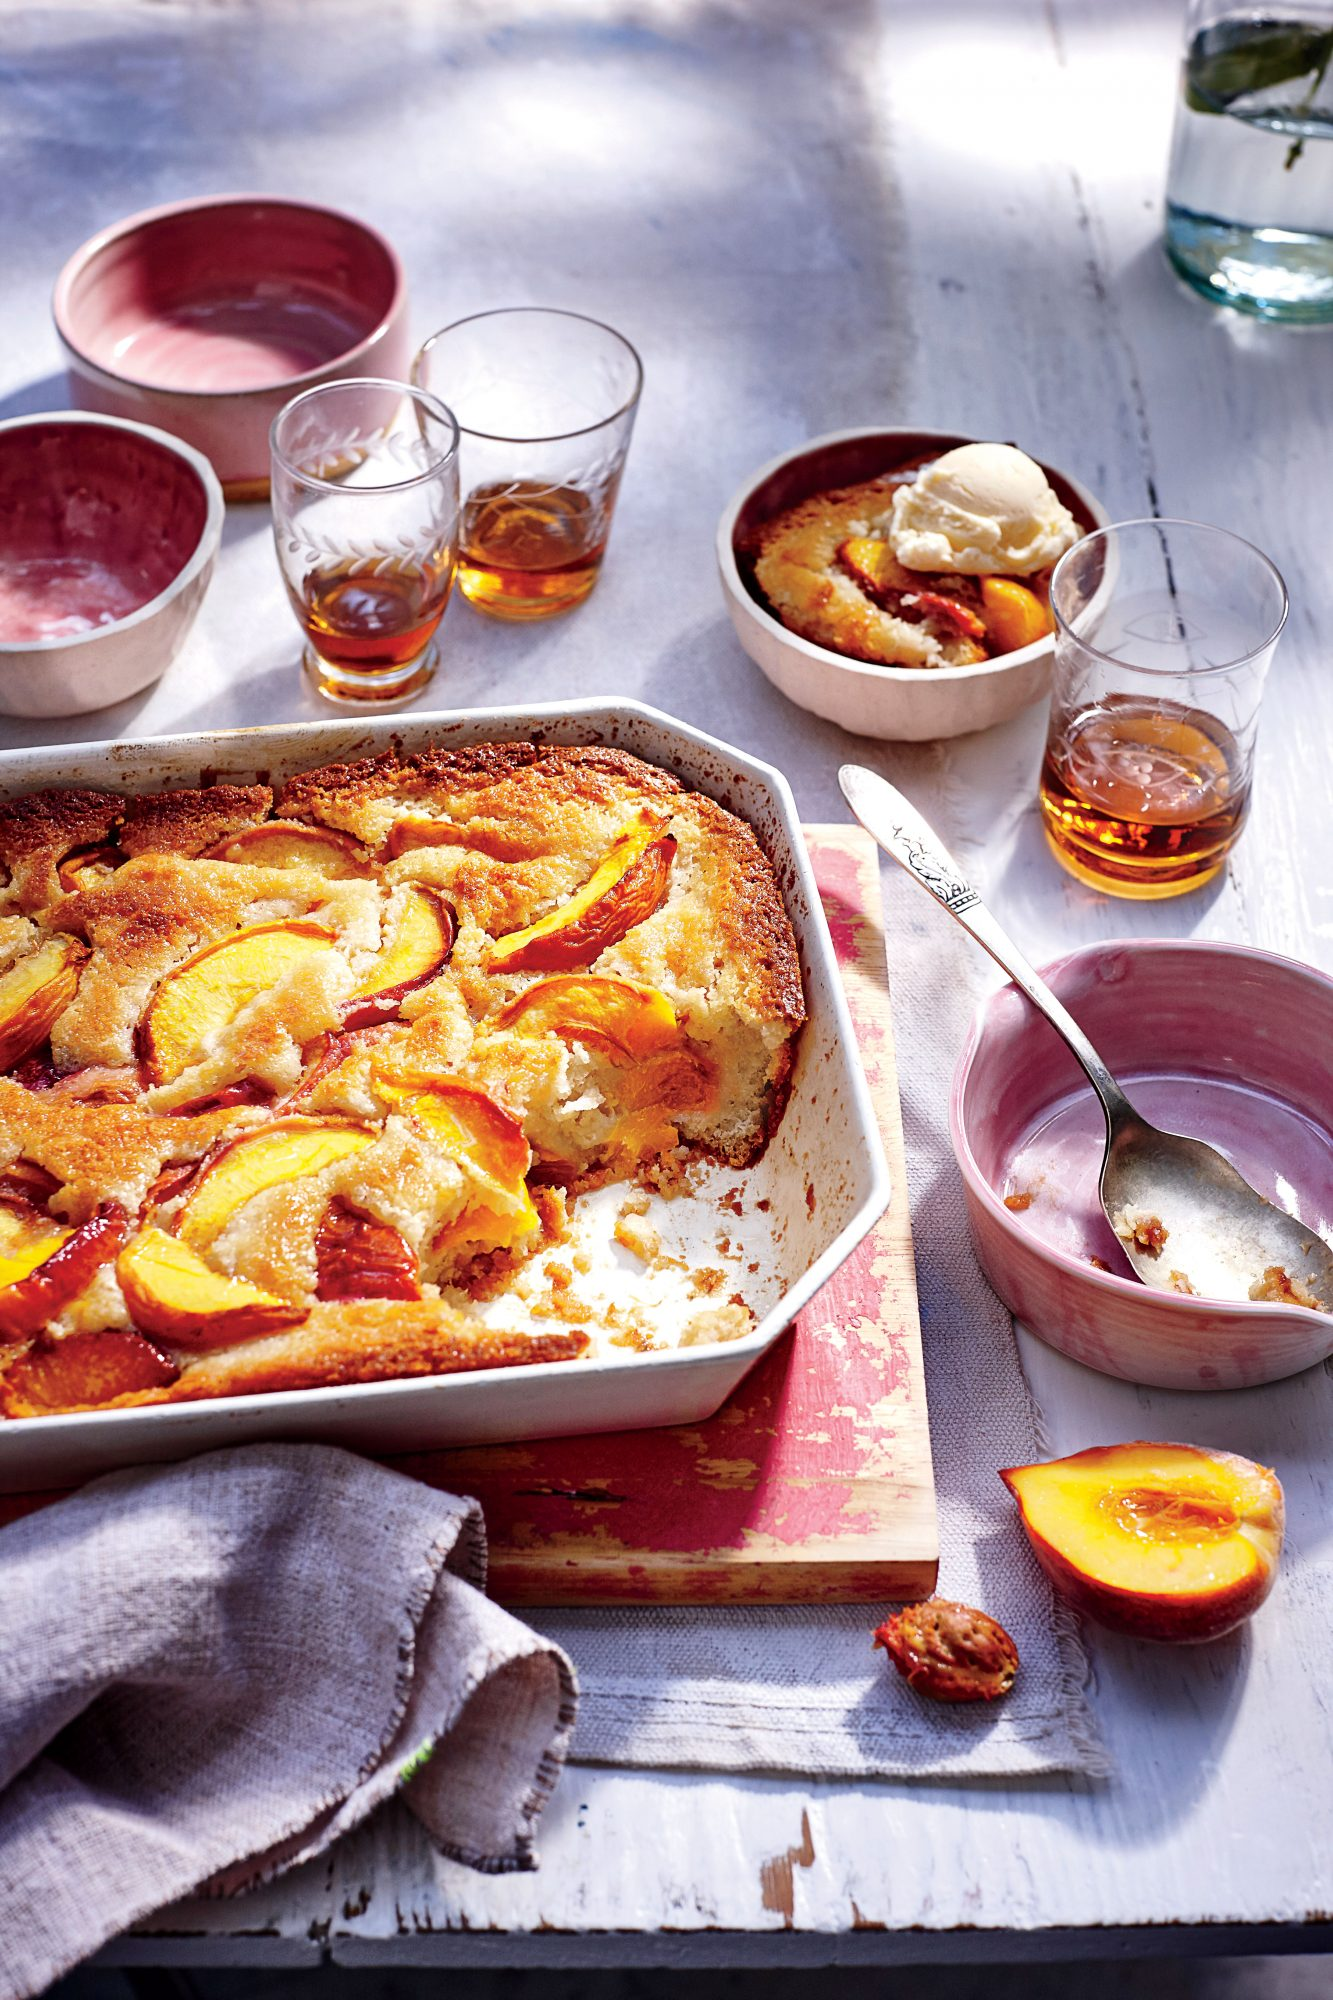 August: Easy Peach Cobbler